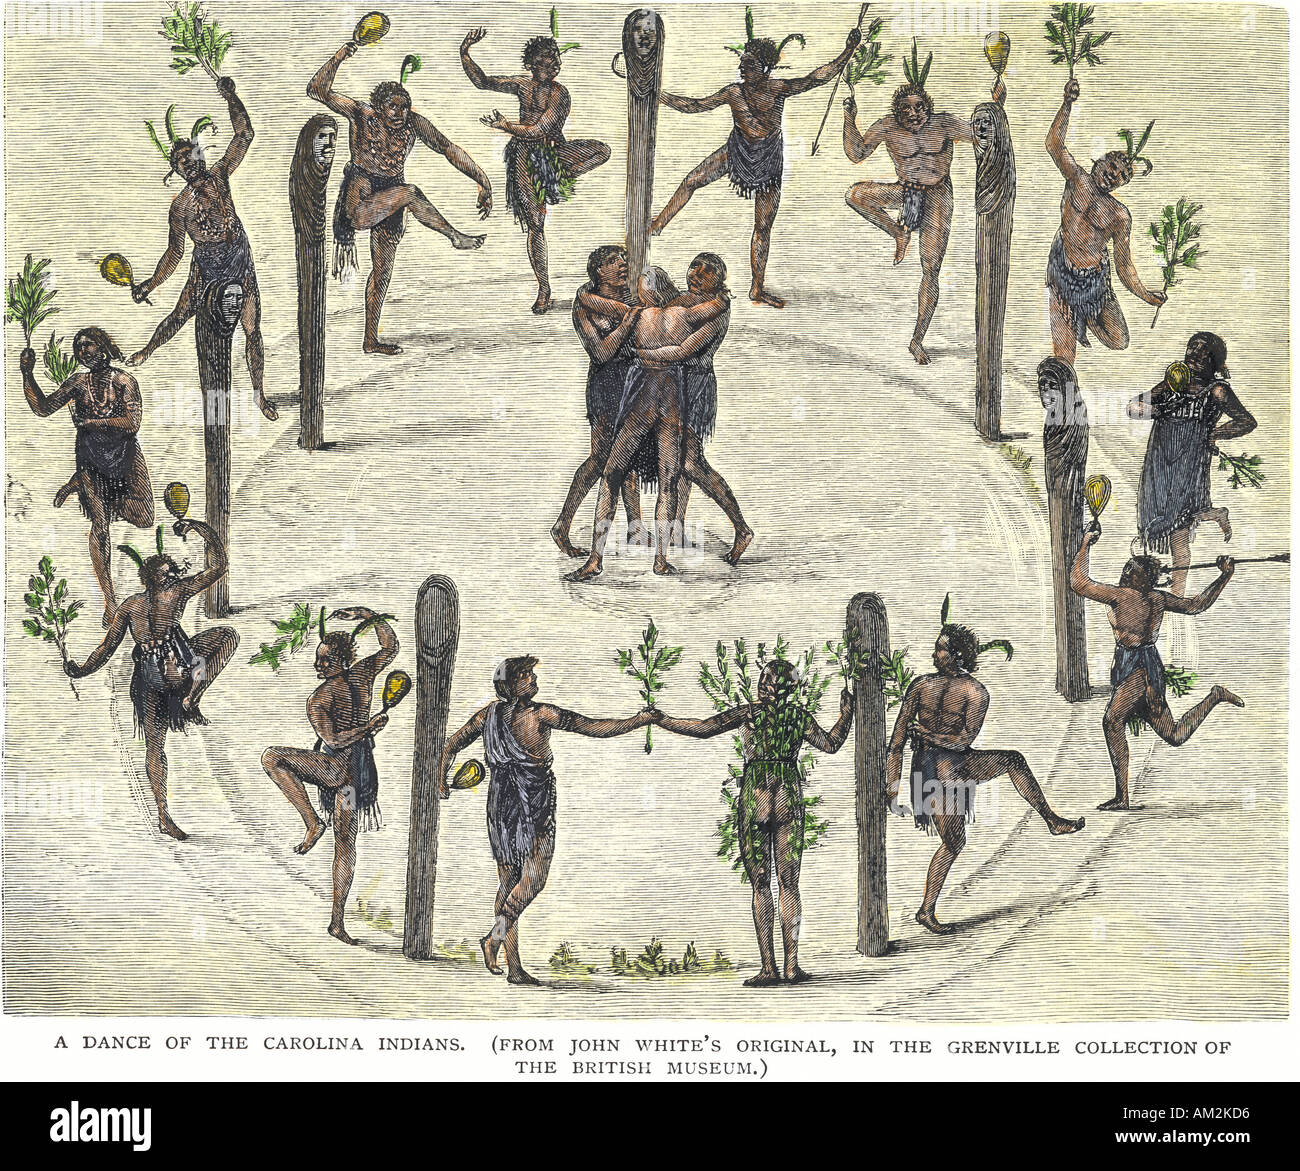 Ceremonial dance of the Carolina Native Americans 1500s. Hand-colored woodcut of a John White illustration - Stock Image